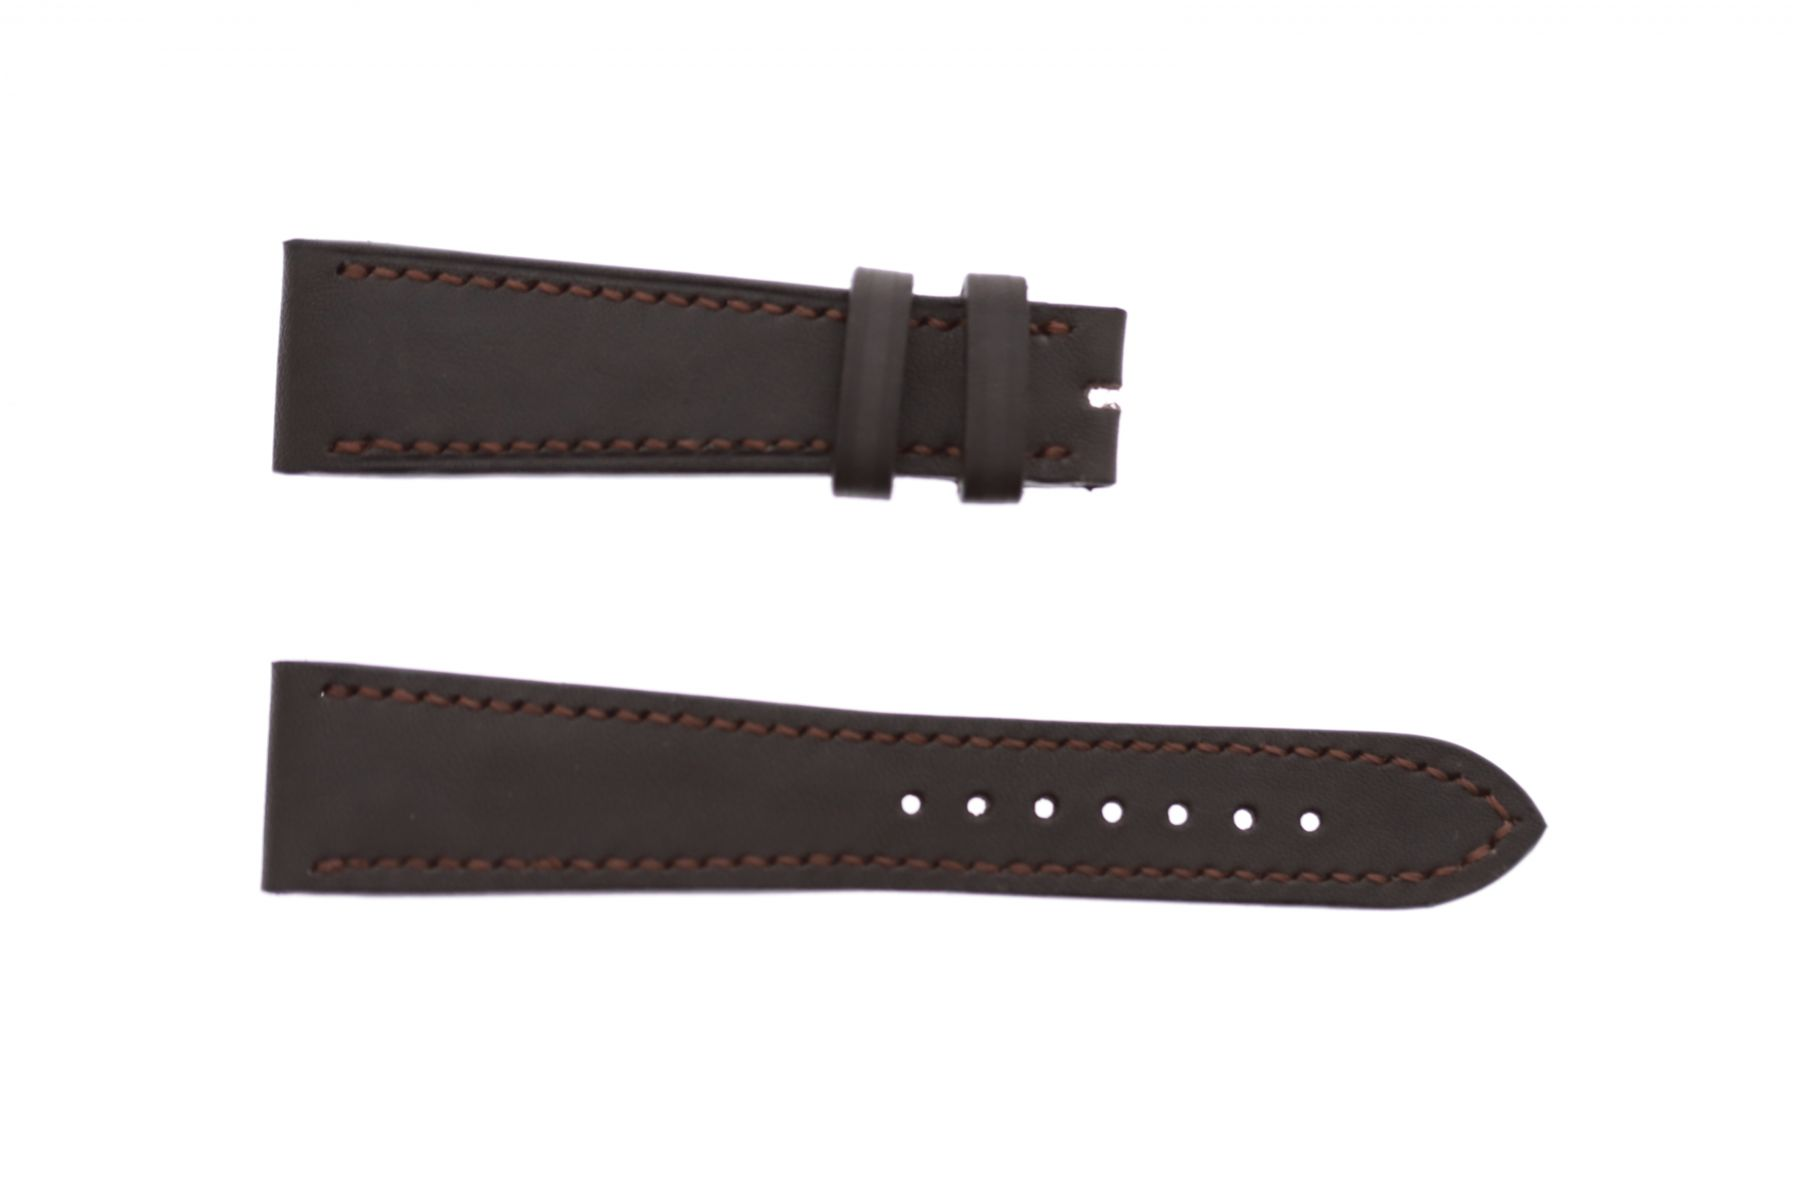 Chocolate Brown in Barenia / Luxury Hermes French calf leather strap 21mm Patek Philippe Calatrava style